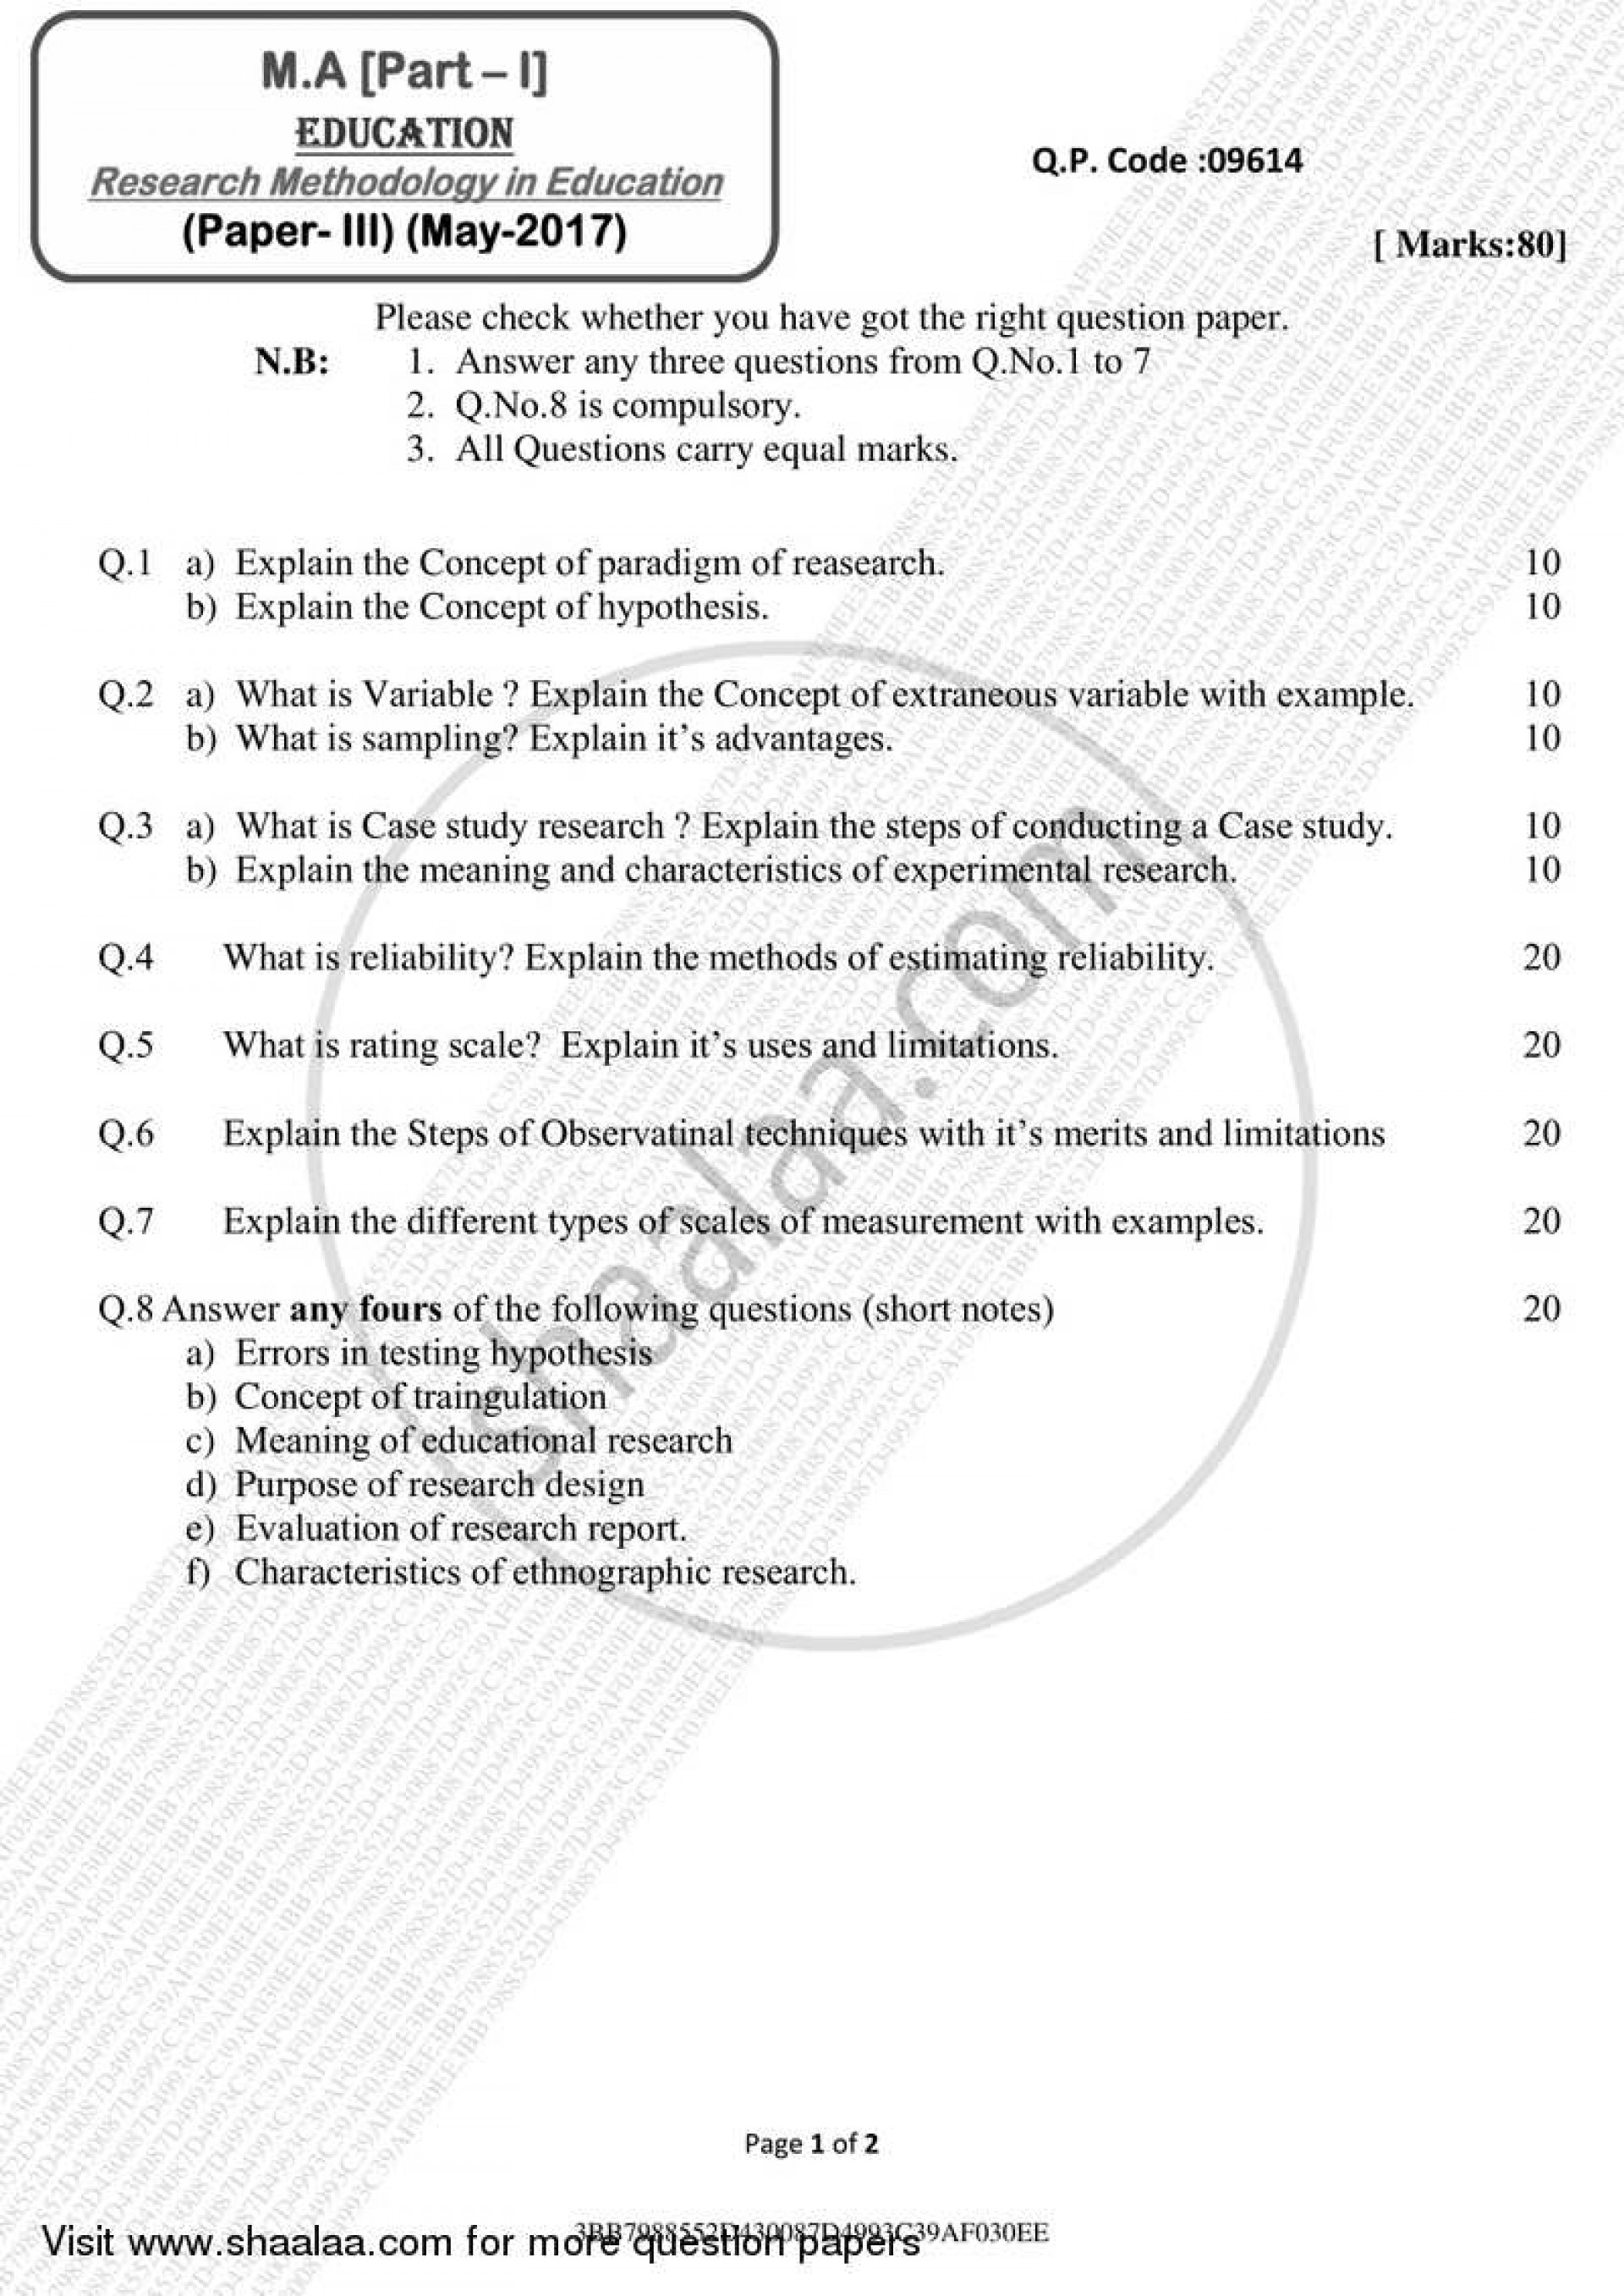 015 Education Researchs Pdf University Of Mumbai Master Ma Methodology Yearly Pattern Part 2017 2f9b9e59f7e3e4986b1075c98d73ba80a Exceptional Research Papers Early Childhood Paper Inclusive 1920